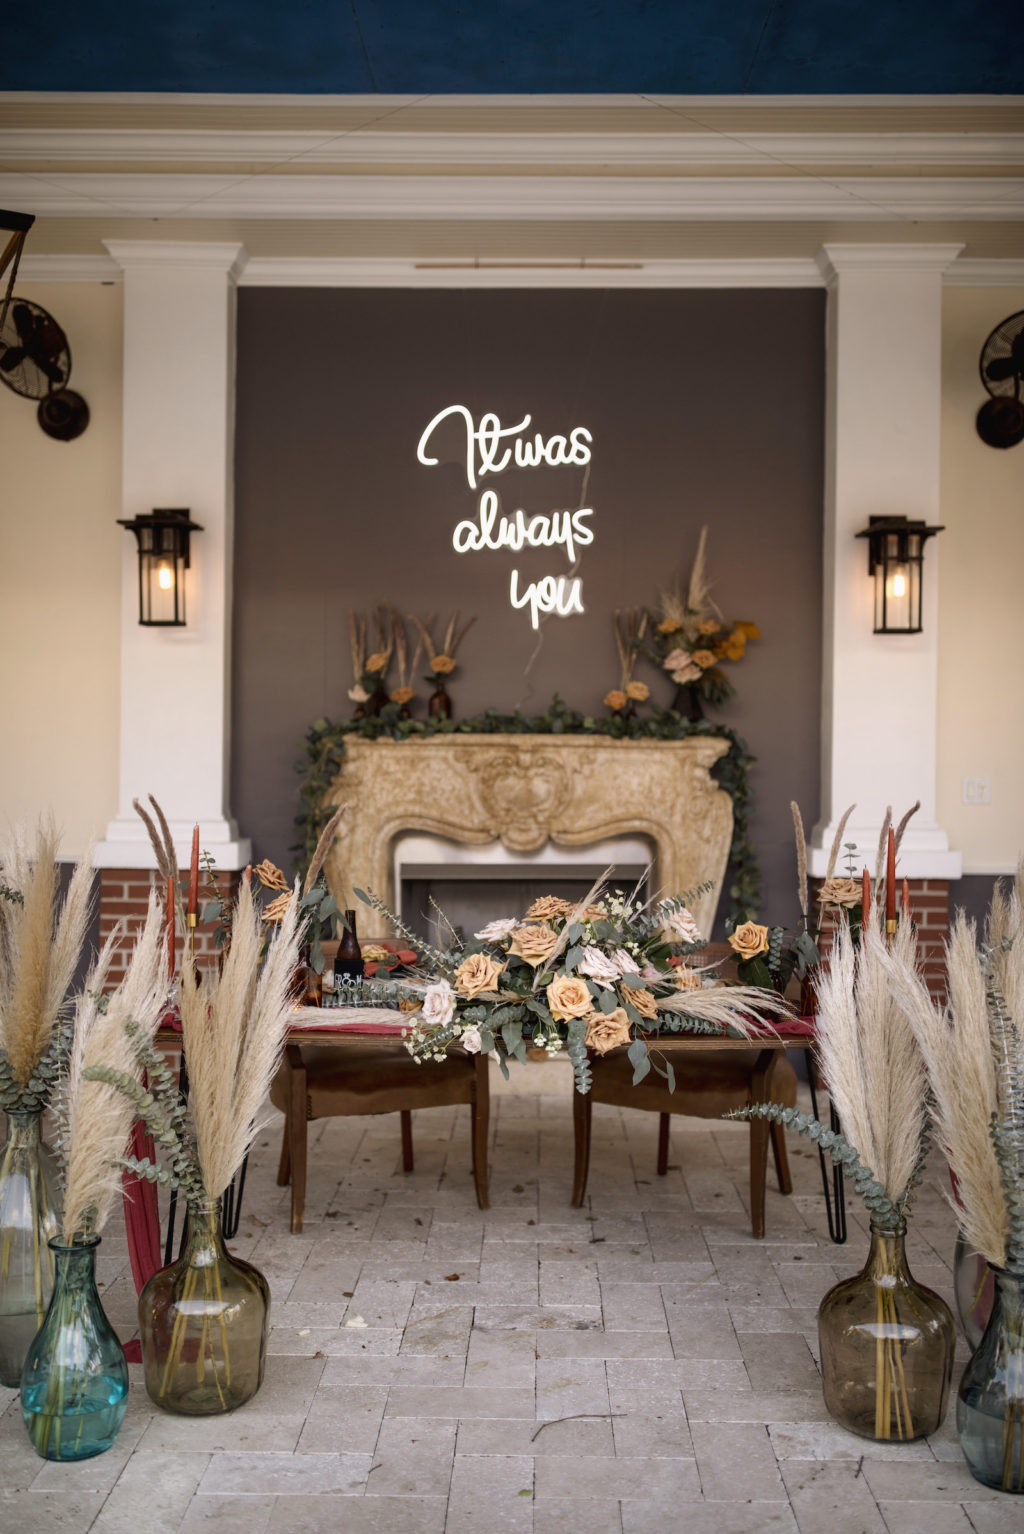 Wedding Neon Sign and Pampas Leaves in Large Clear Vases with Greenery   Boho Wedding Reception Décor with Sweetheart Table   Kate Ryan Event Rentals   Sarasota Wedding Planner Kelly Kennedy Weddings and Events